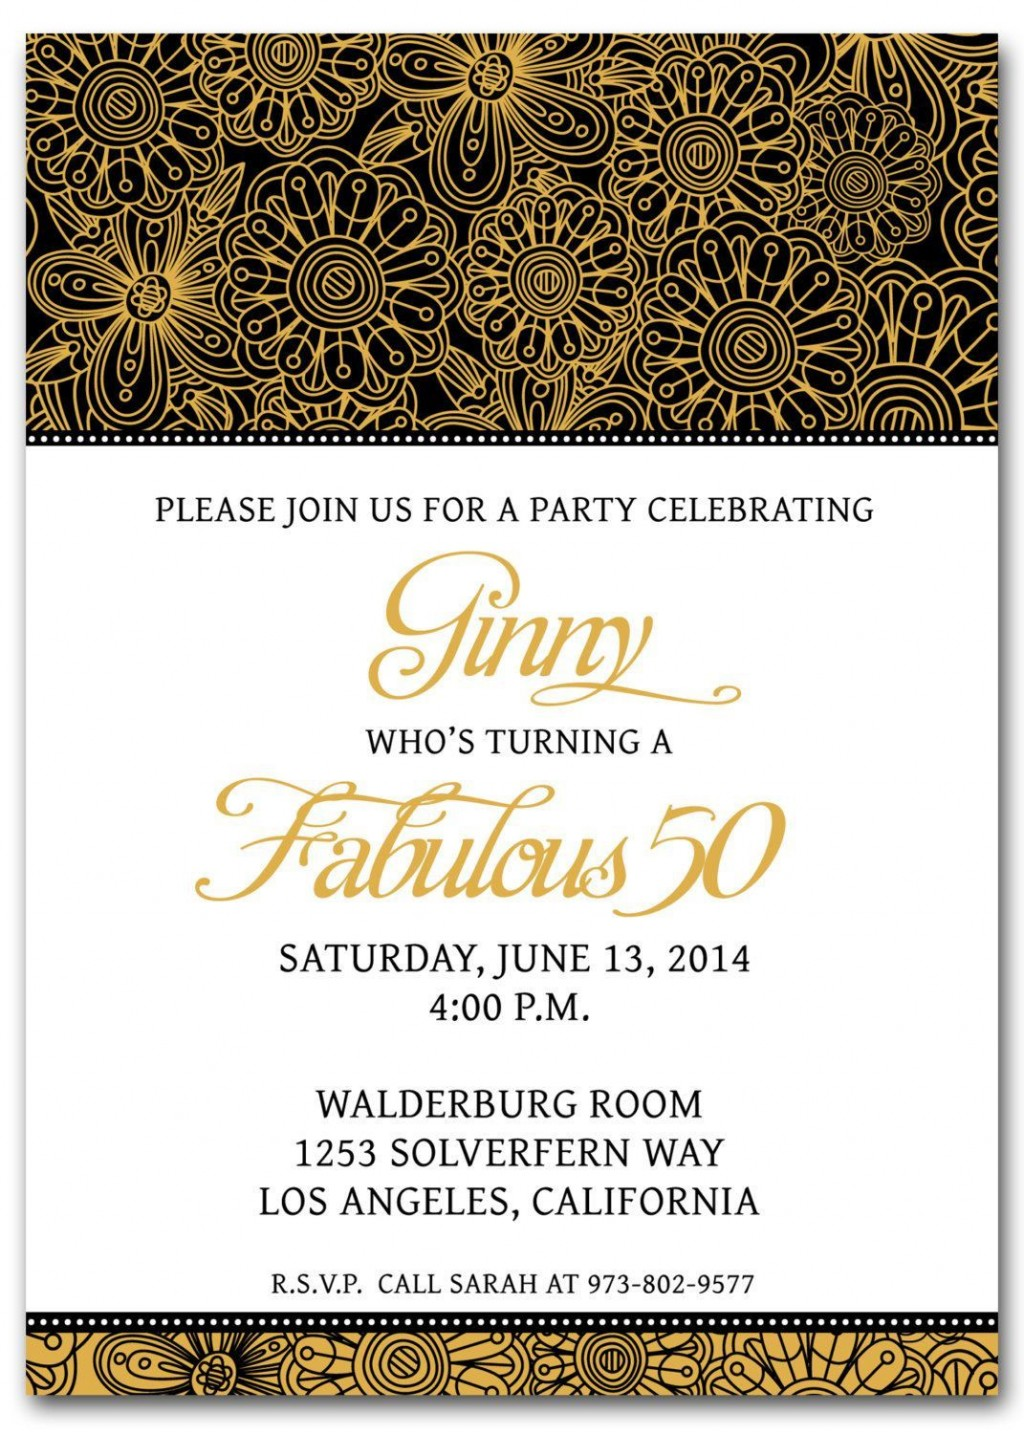 002 Outstanding 50th Birthday Invitation Template Image  Vector Free For HimLarge